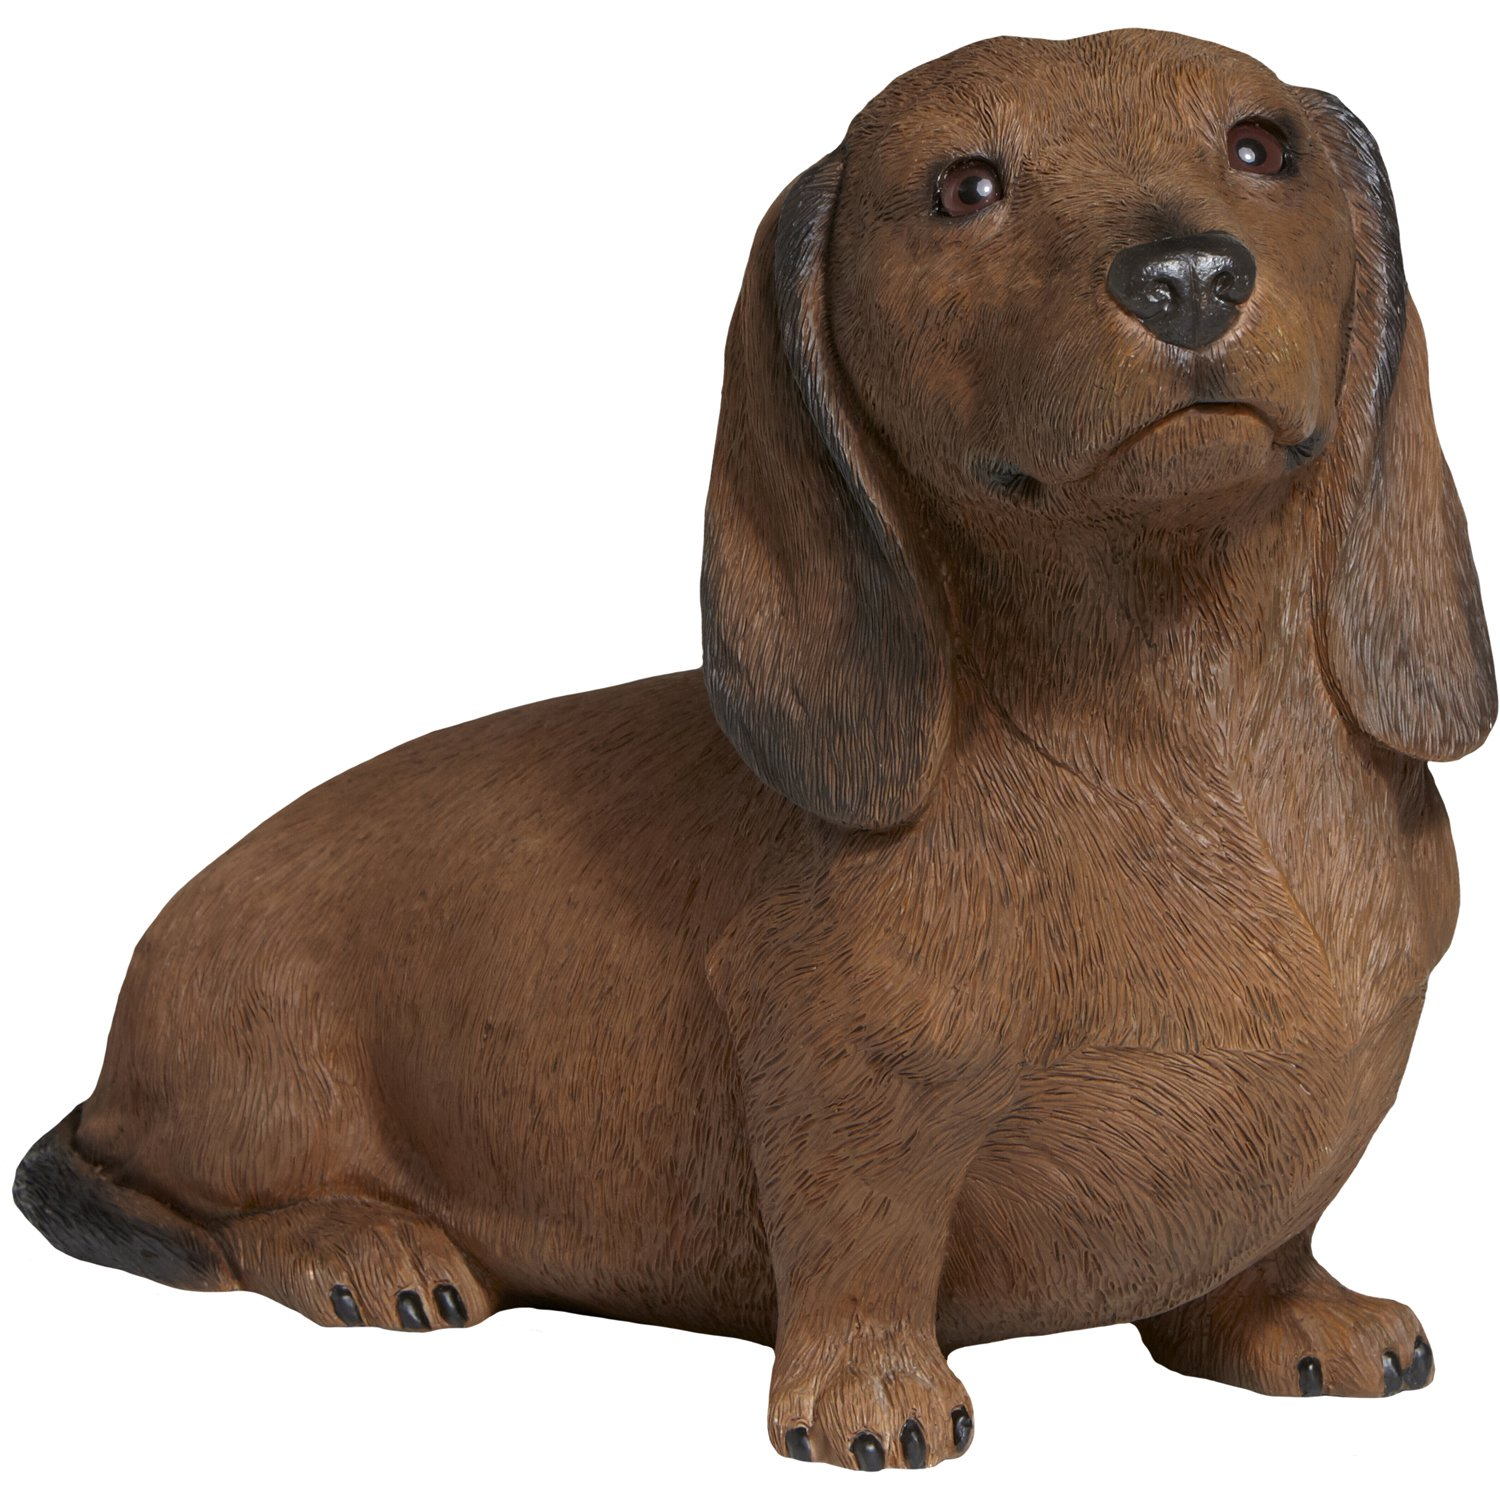 Sandicast Smooth Red Dachshund Sculpture, Sitting, Life Size